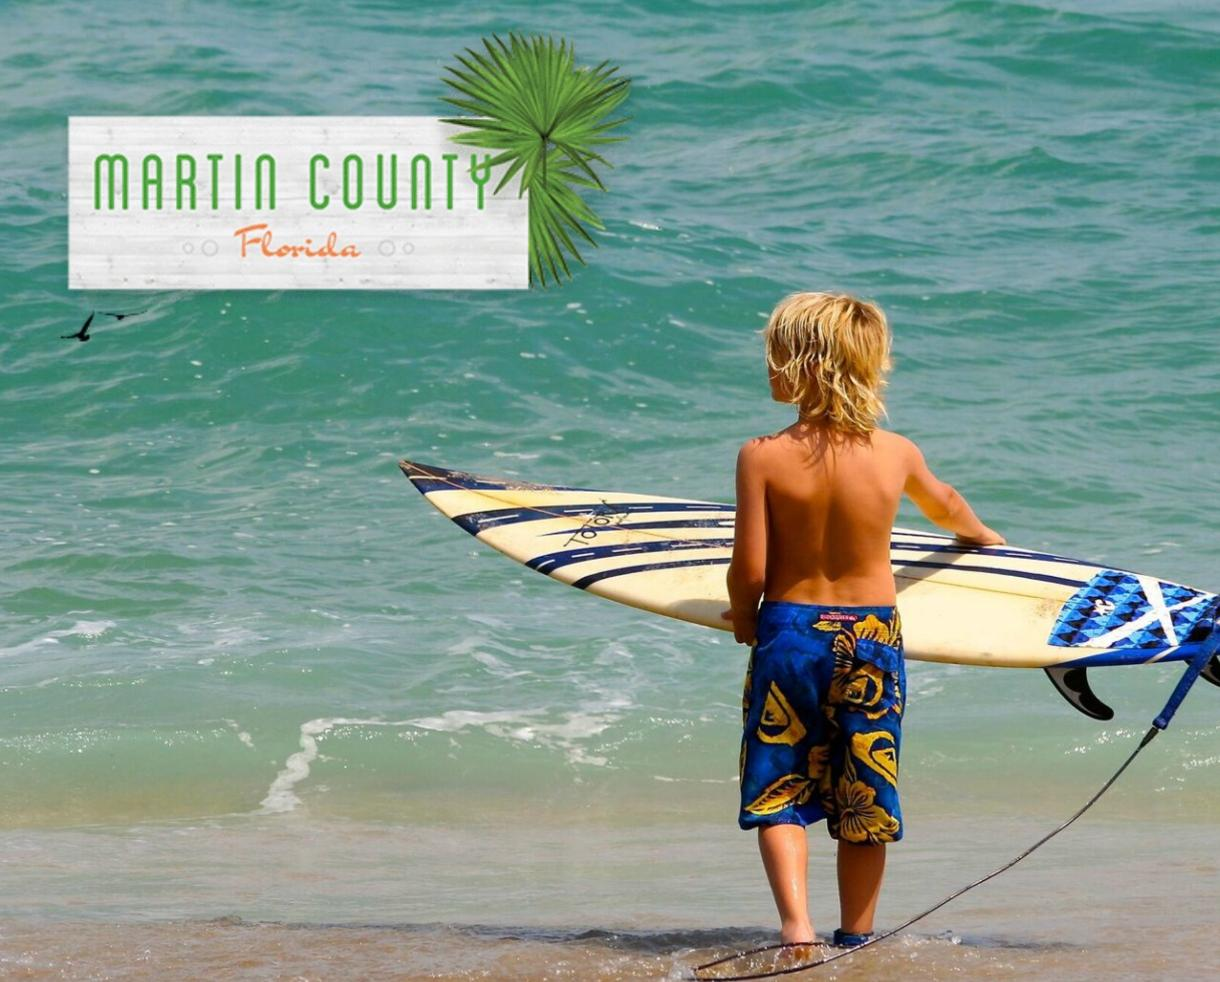 Escape to Martin County, Florida for Blue Waves & Small Town Charm!